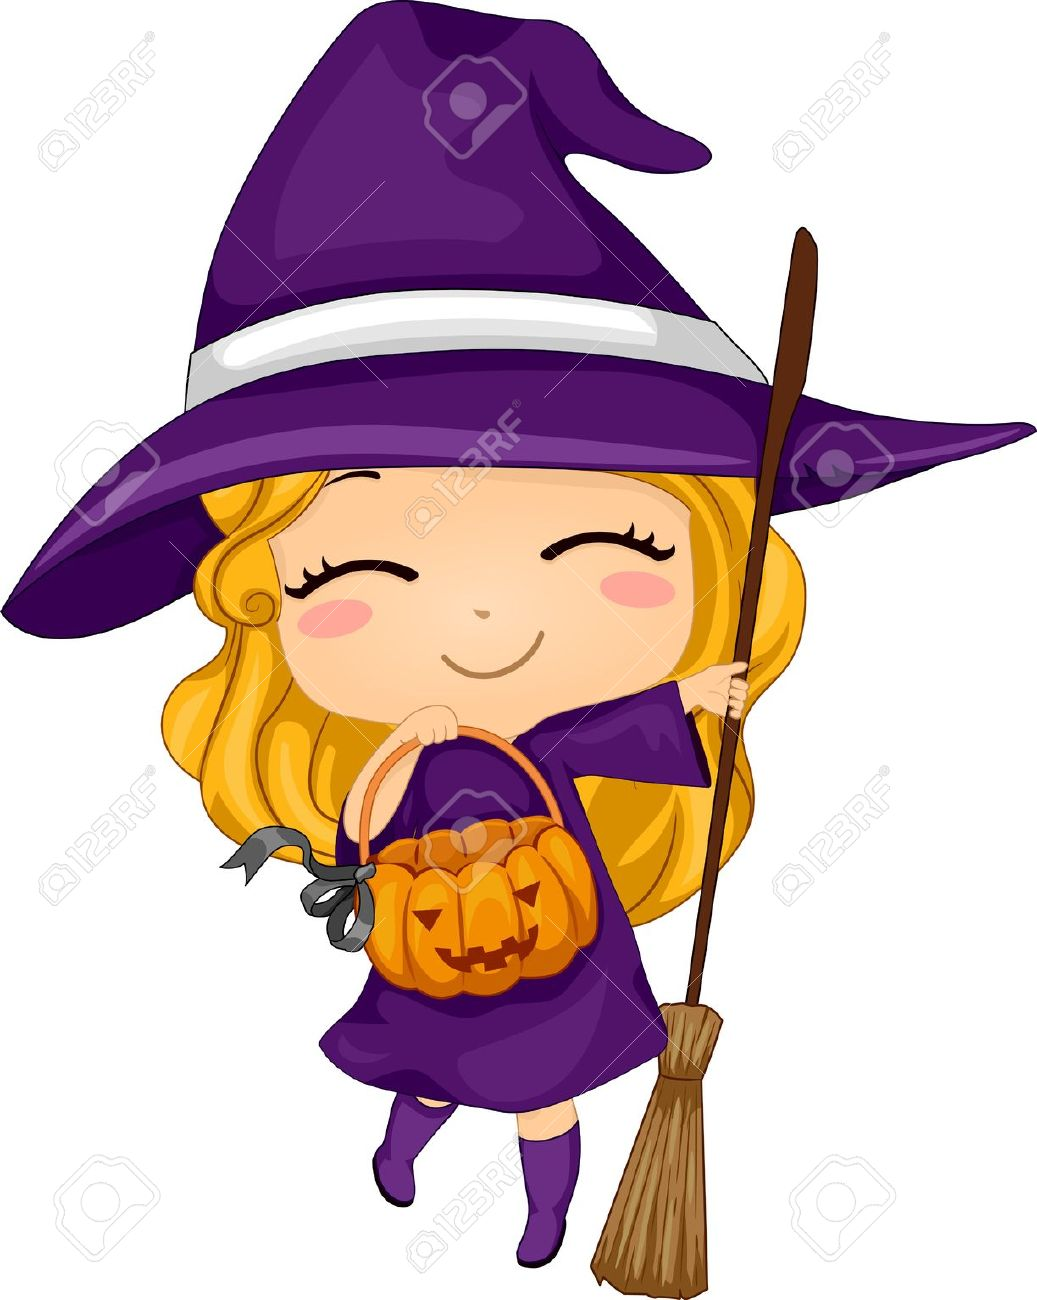 cartoon witch illustration of a kid dressed as a witch - Halloween Witch Cartoon